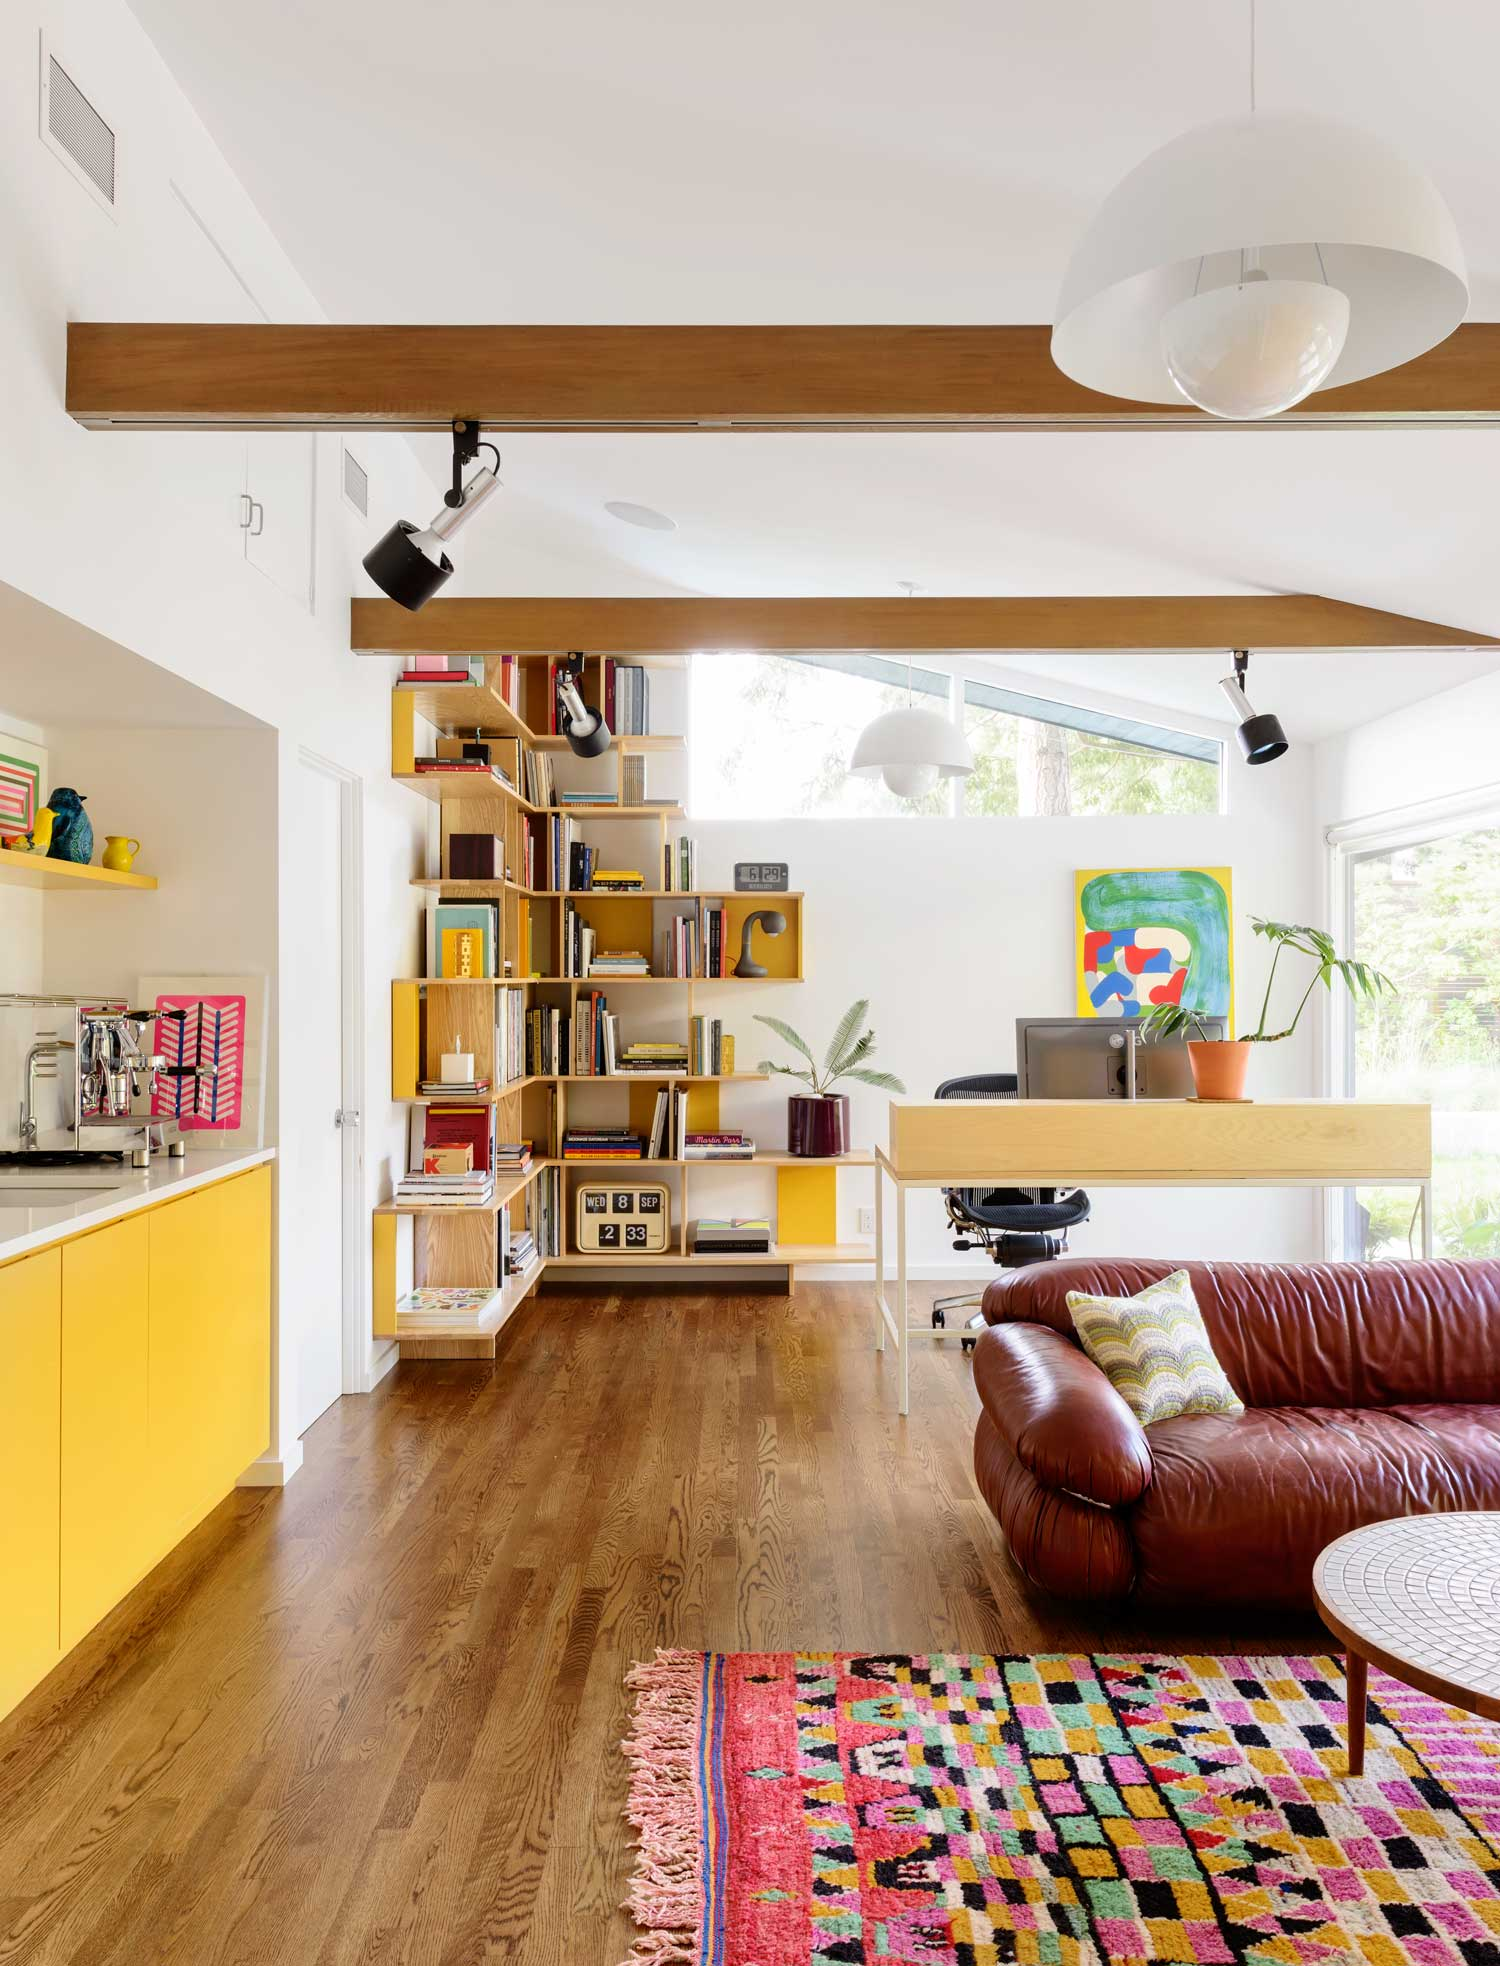 Remodel of a 1950s house by jessica helgerson interior design yellowtrace